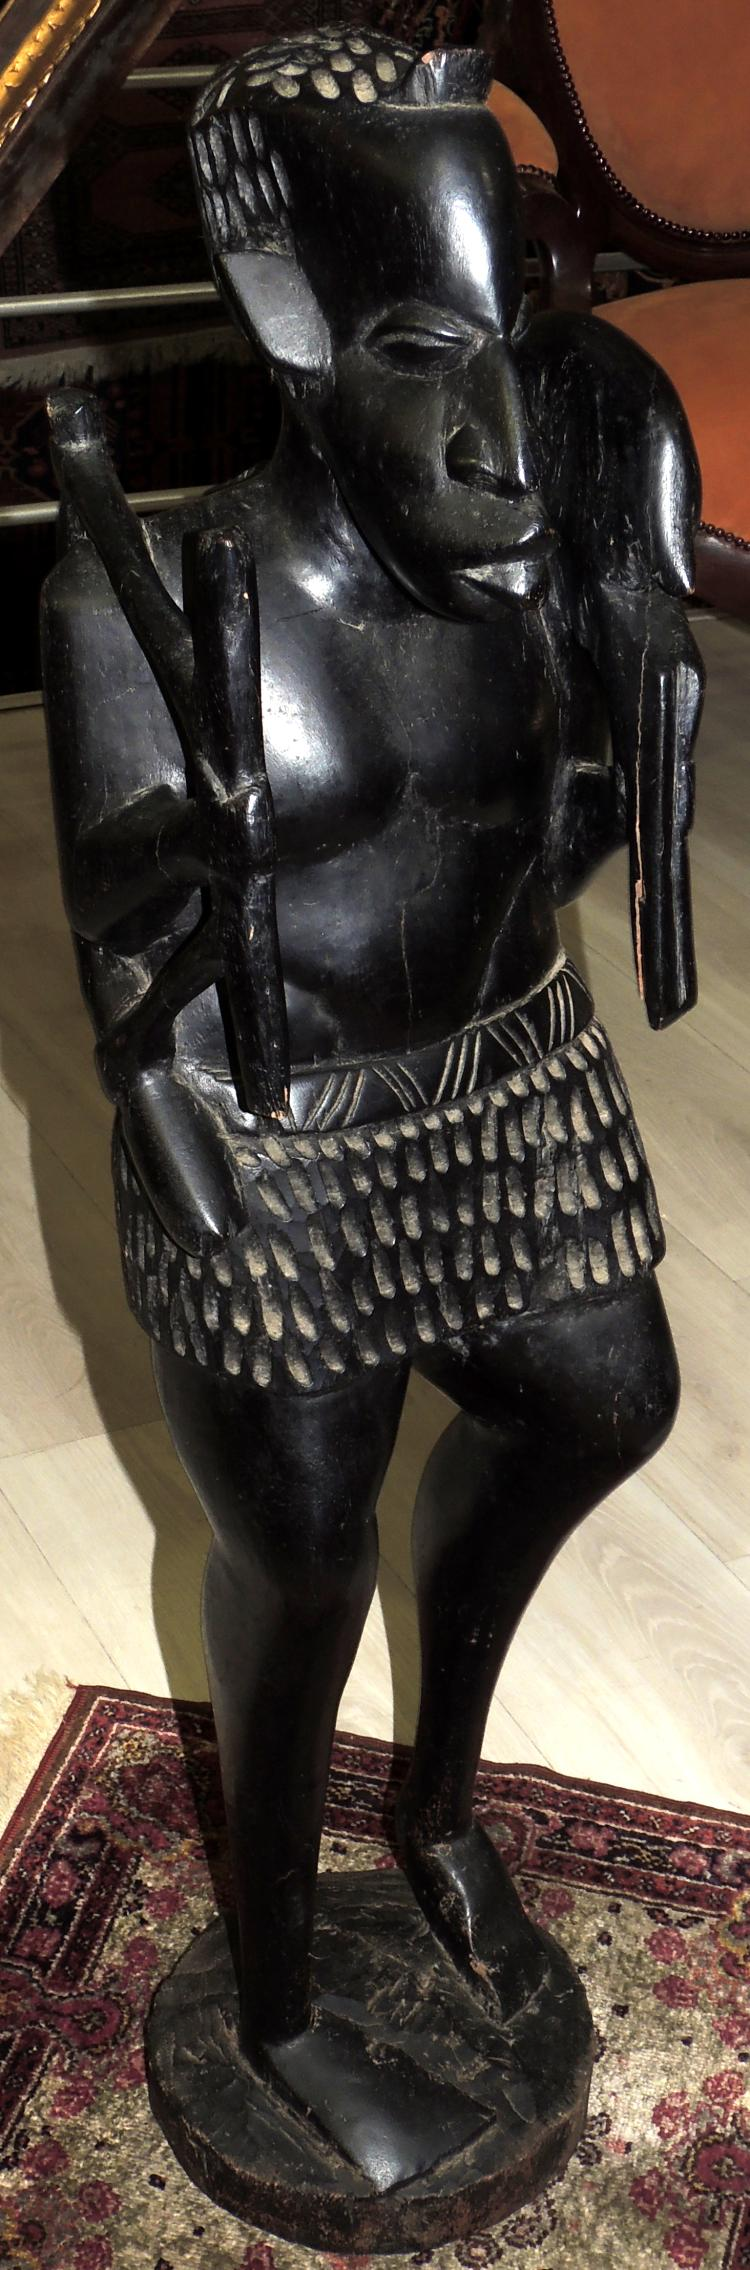 AFRICAN FIGURE in carved ebony wood.Height: 97 cm